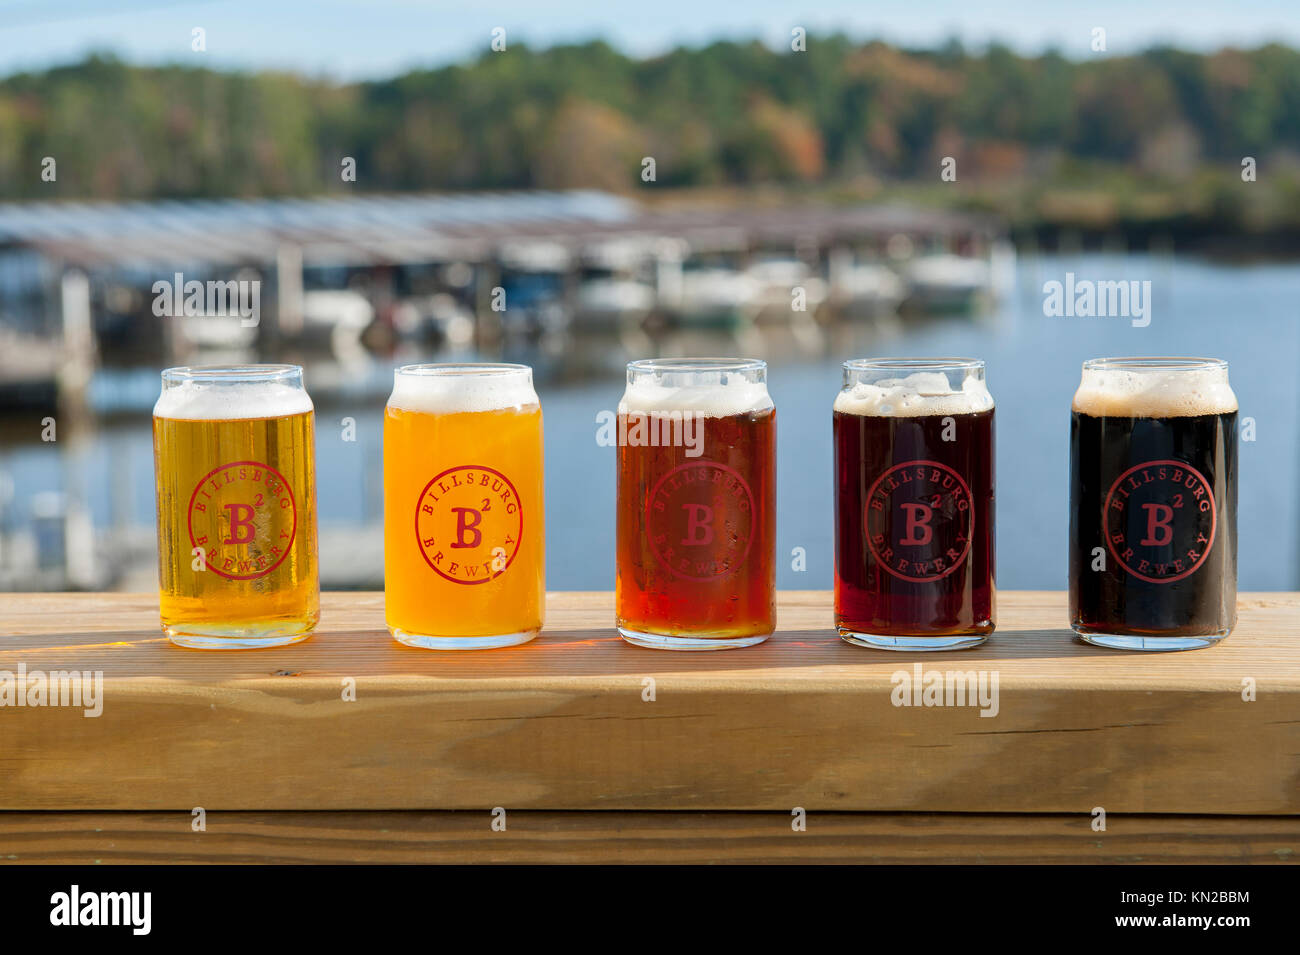 micro breweries stock photos micro breweries stock. Black Bedroom Furniture Sets. Home Design Ideas